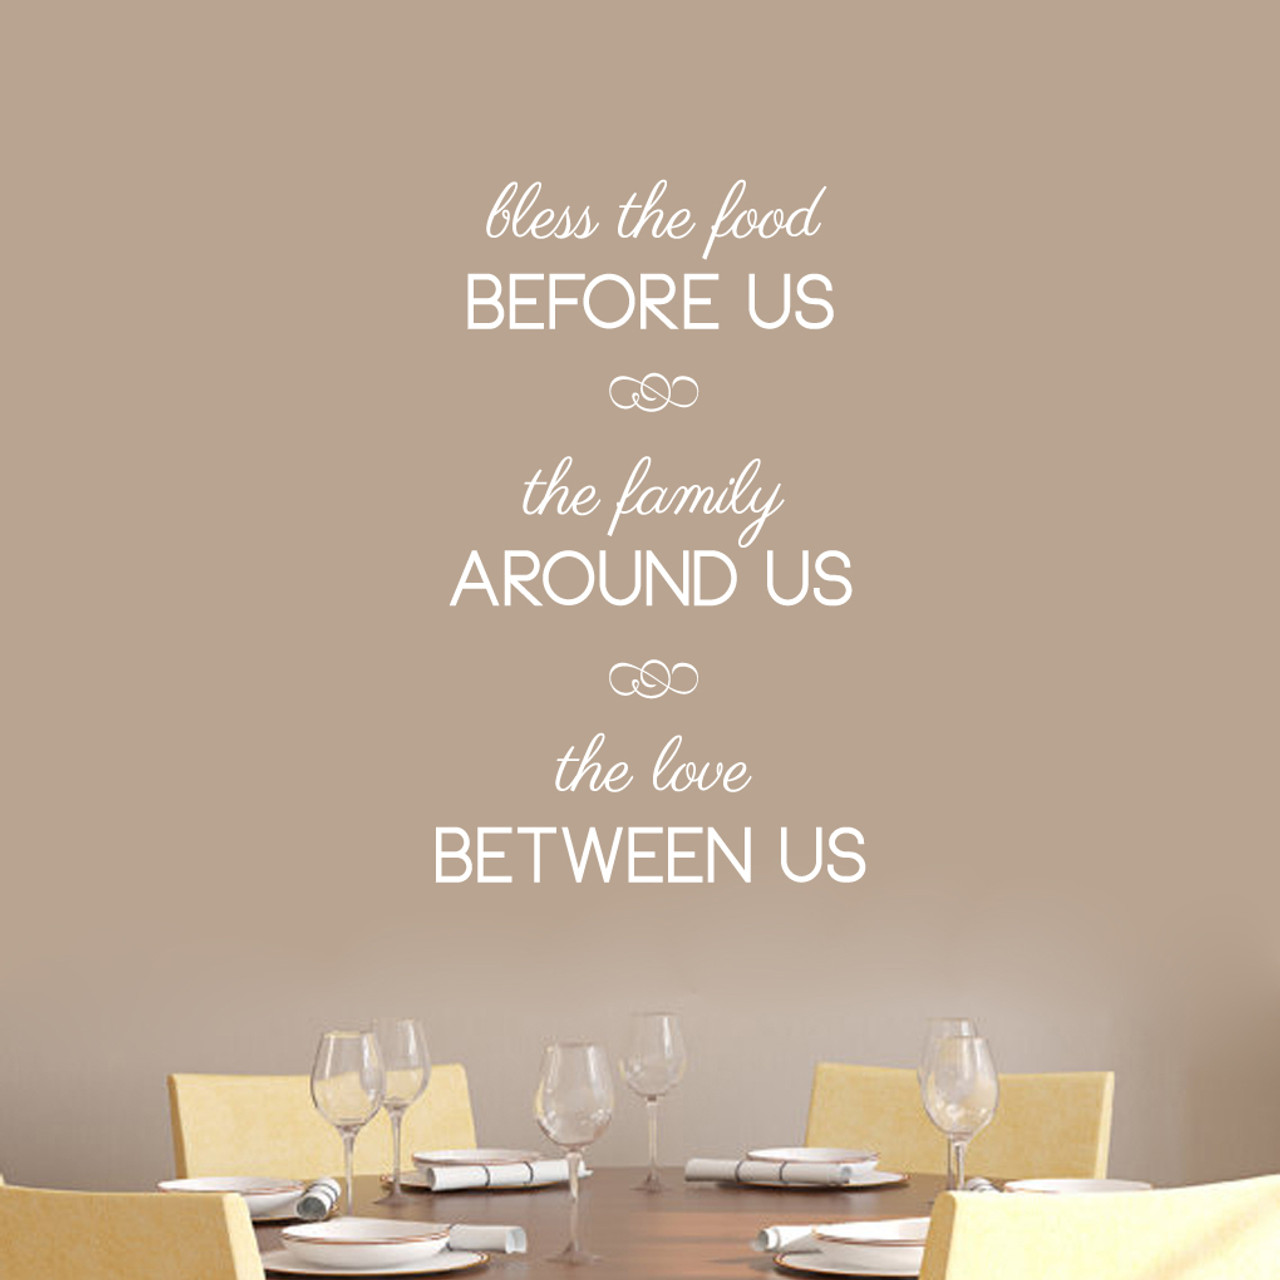 39c9231c315 Bless The Food Before Us Wall Decals 22